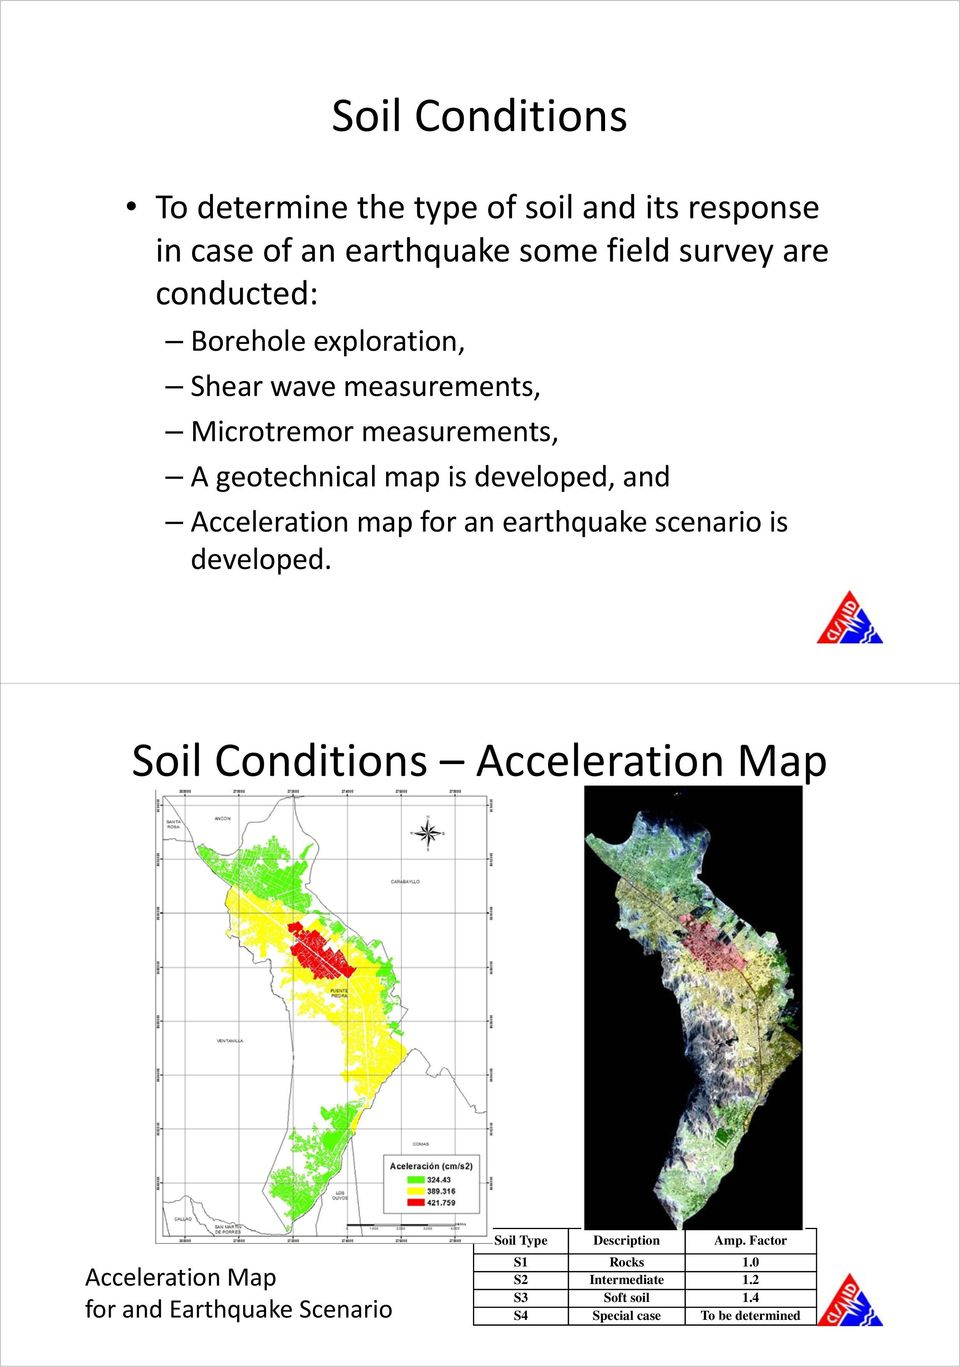 Acceleration map for an earthquake scenario is developed.